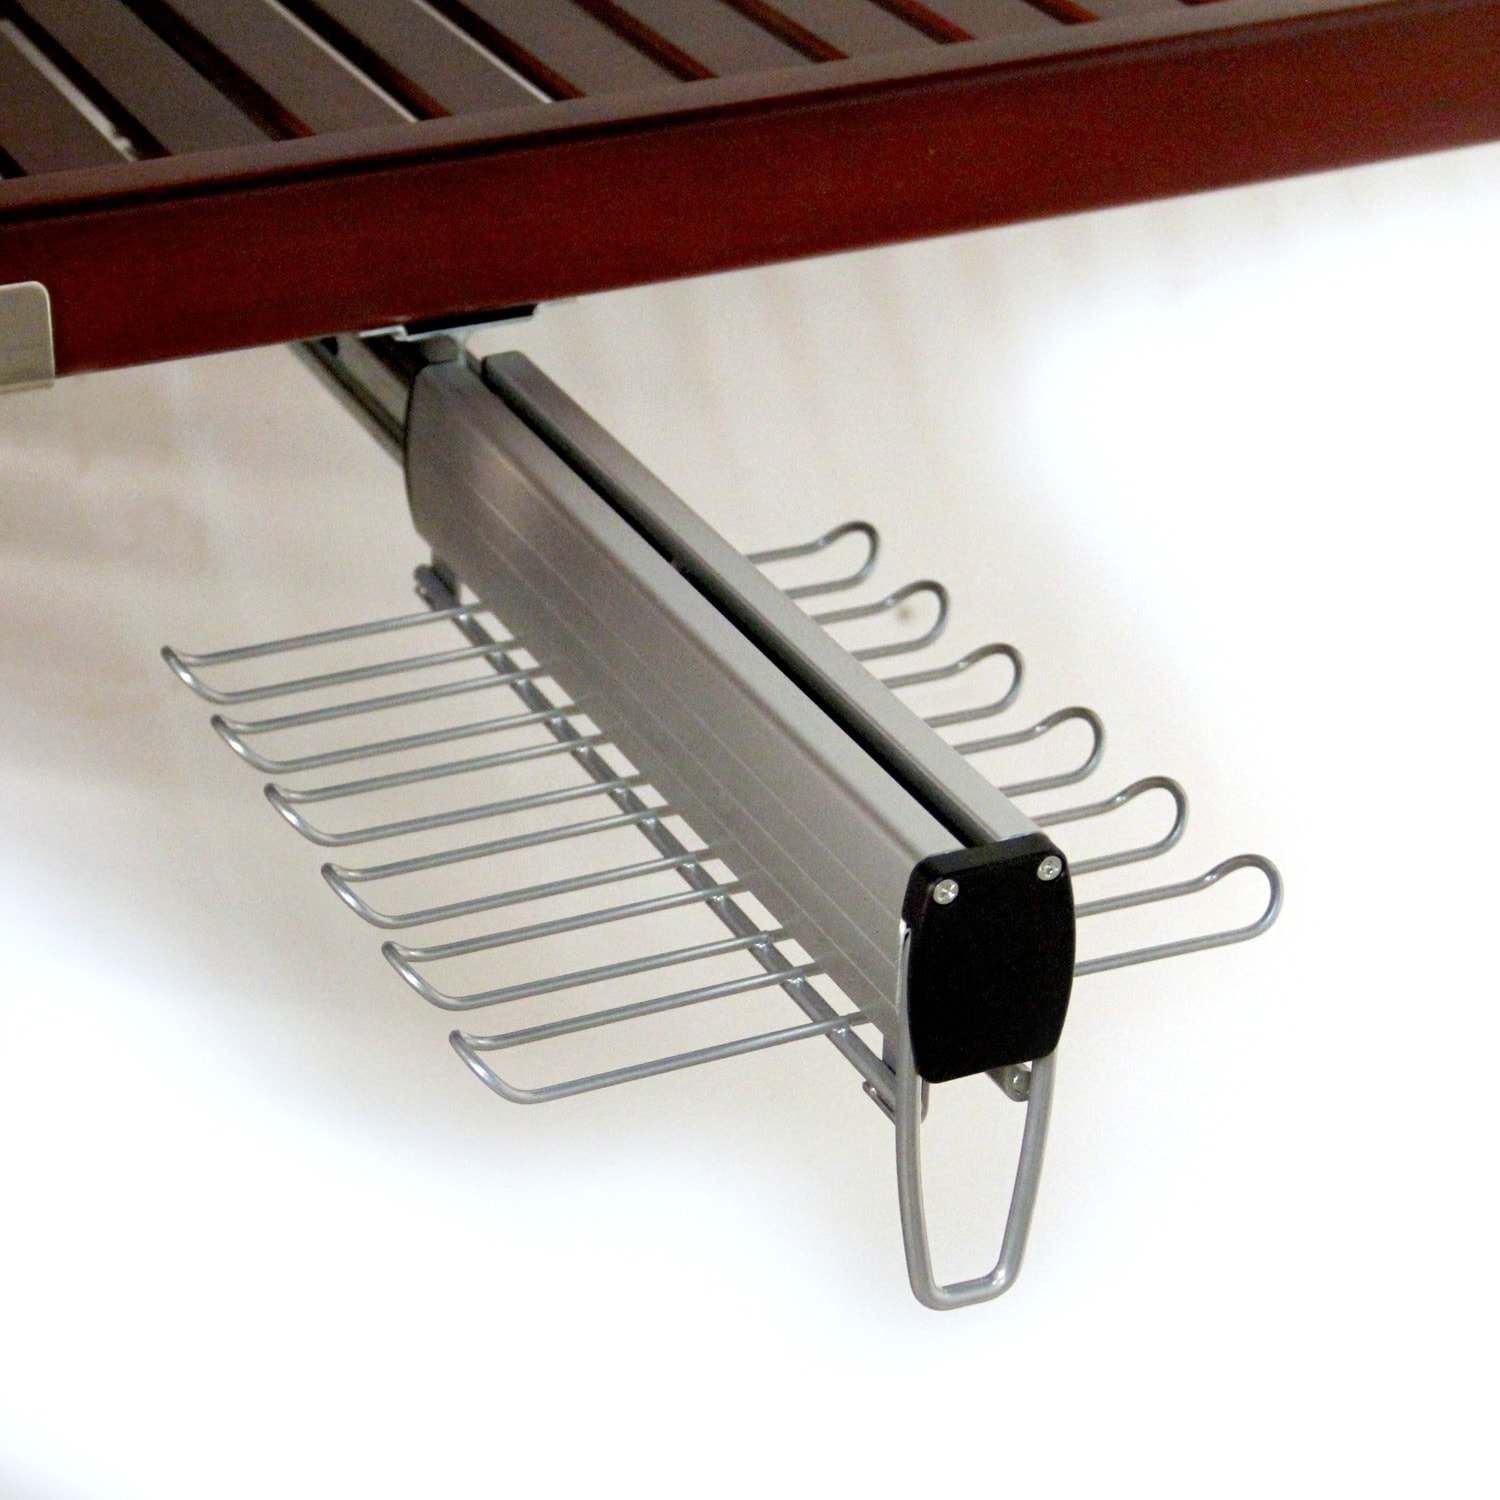 John Louis 12-inch Tie and Belt Undermount Rack at Sears.com